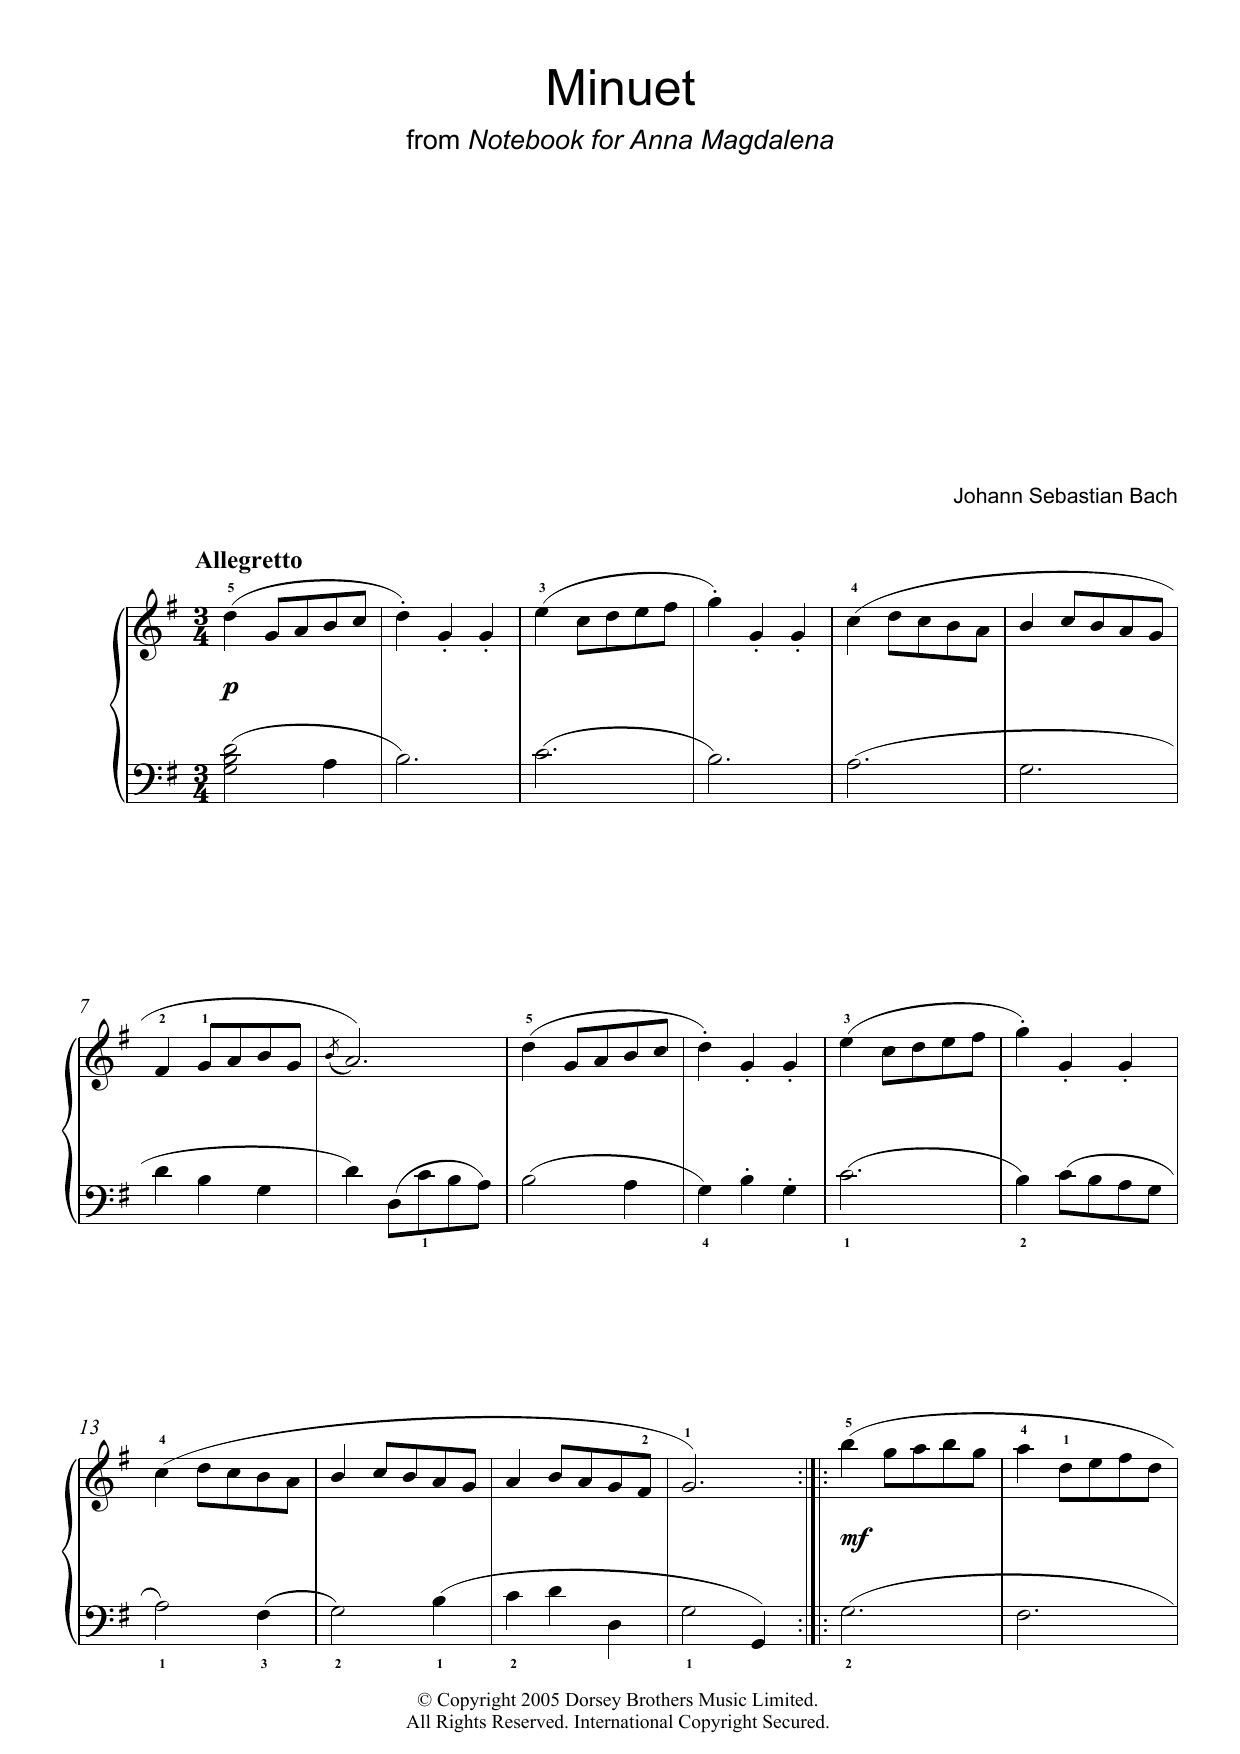 Minuet in G Major (from The Anna Magdalena Notebook) (Piano Solo)